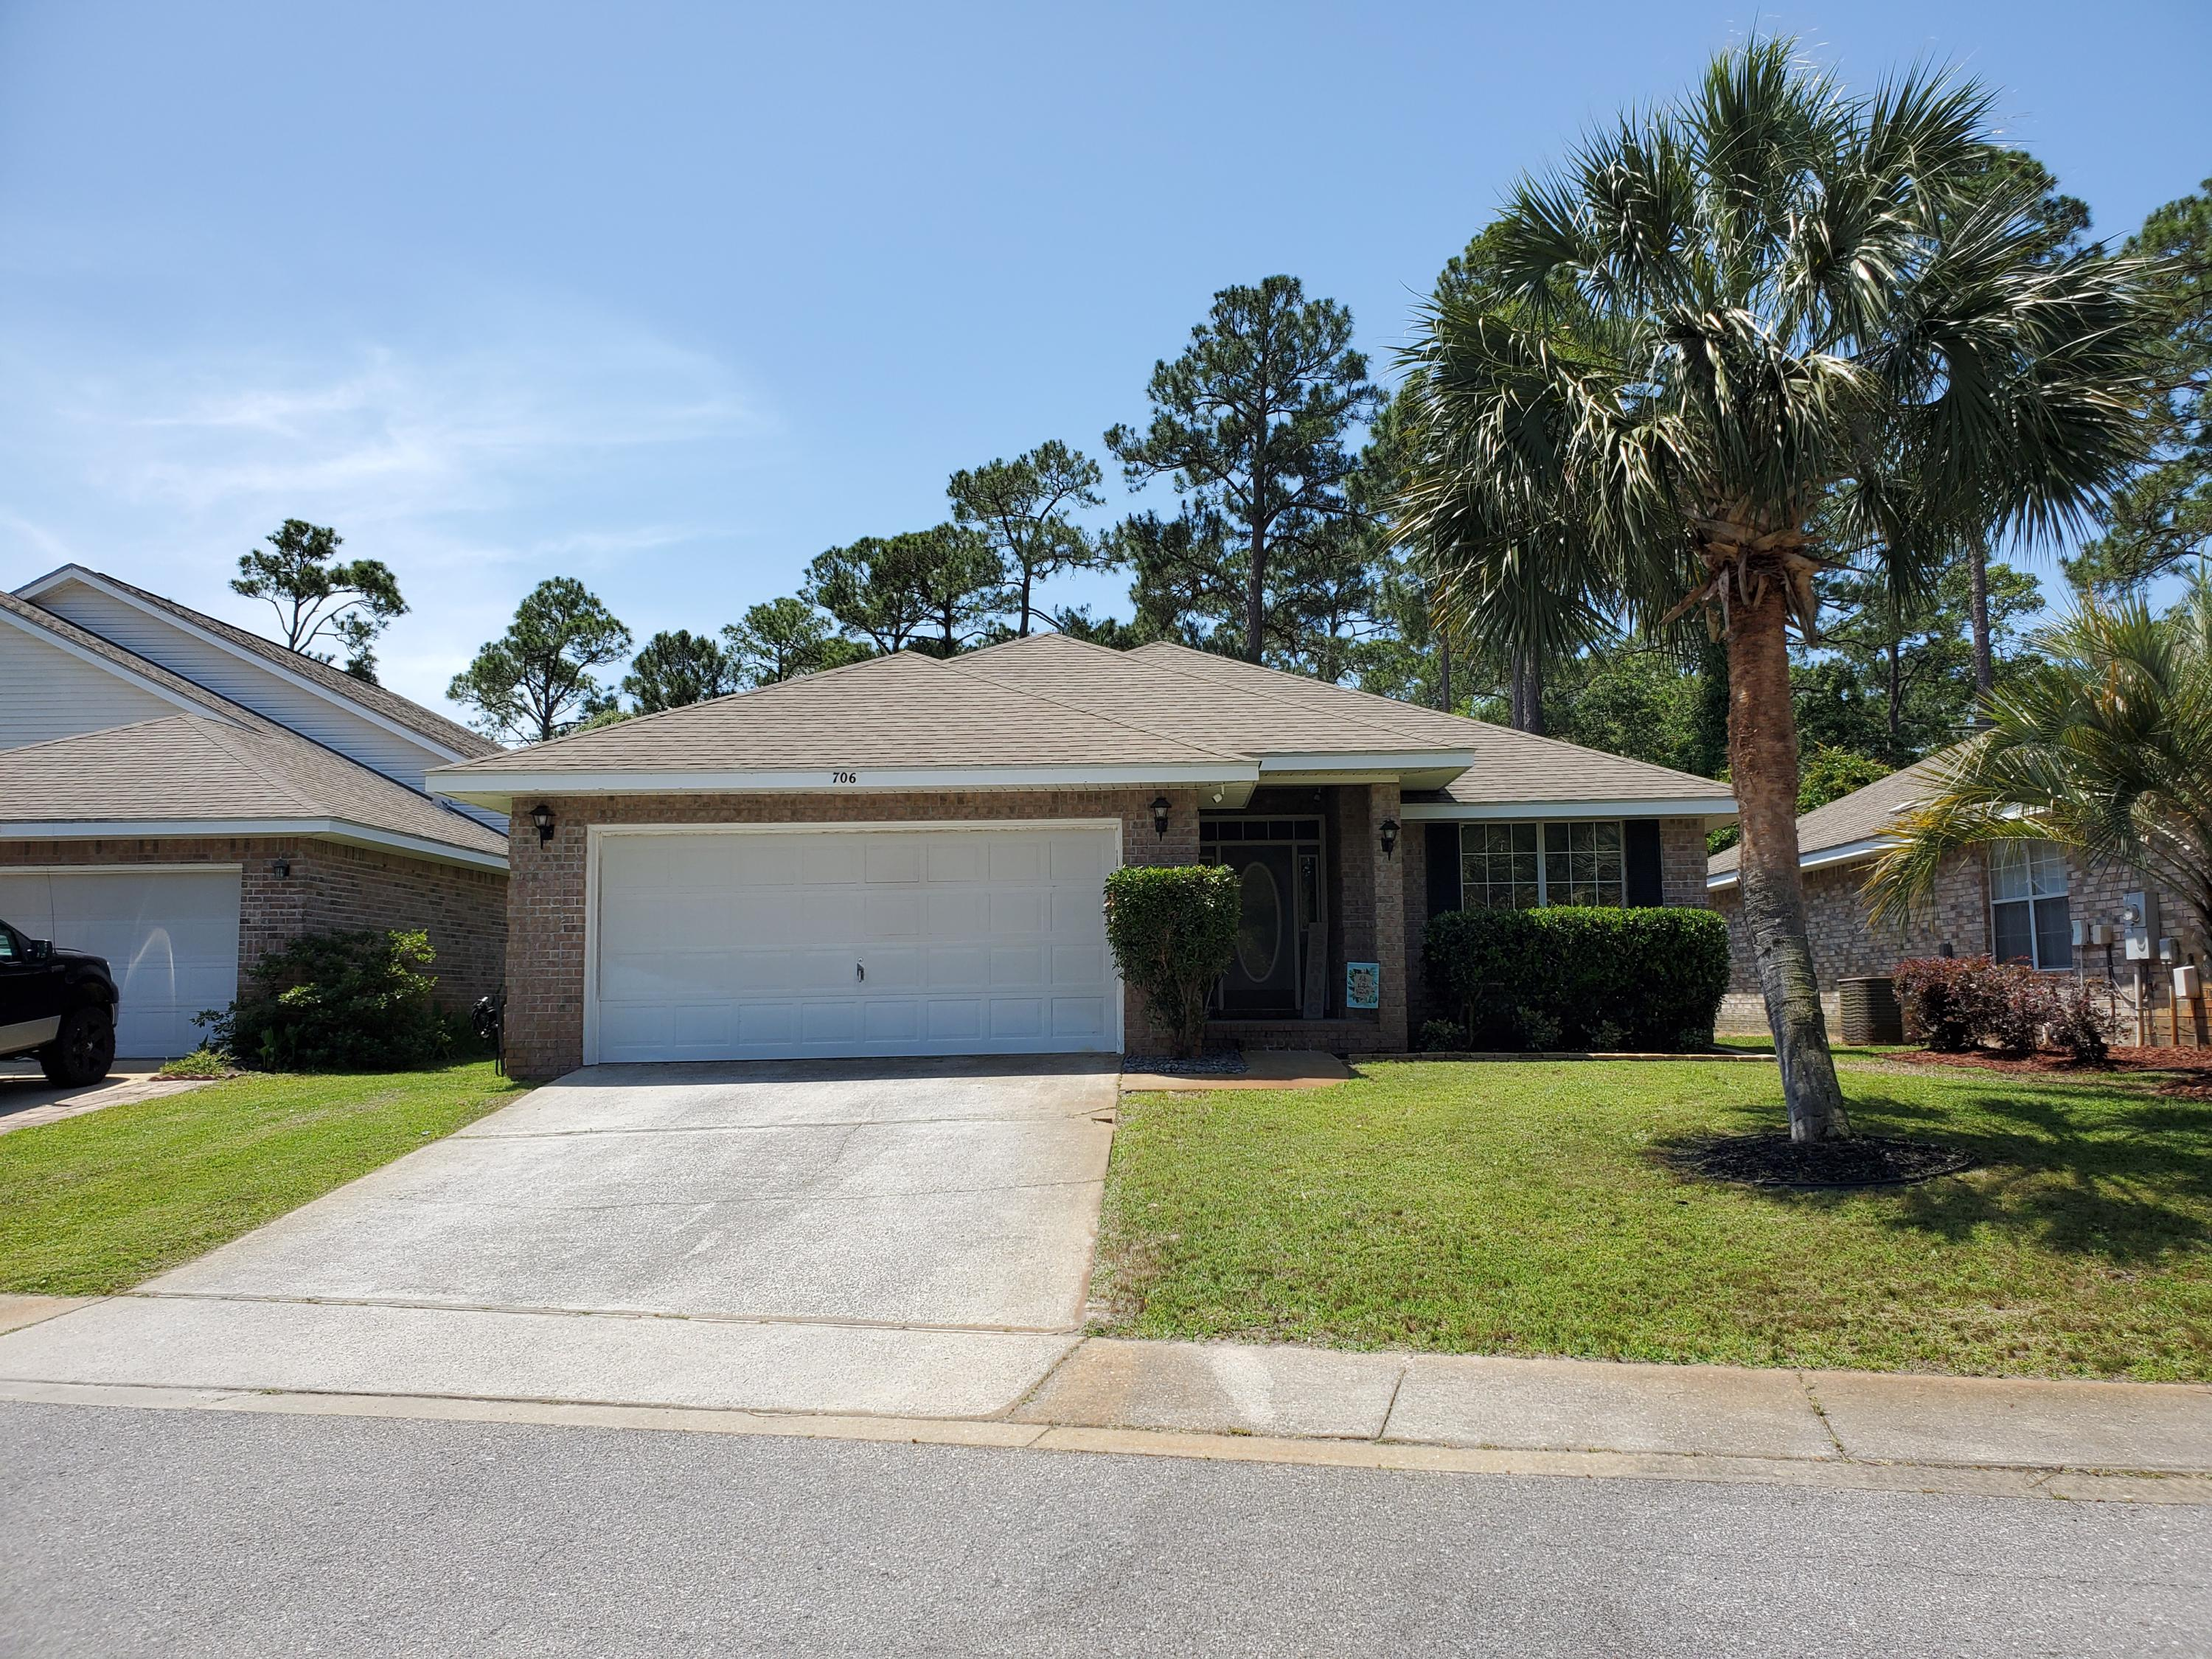 706 Marsh Harbor Drive, Mary Esther, FL 32569